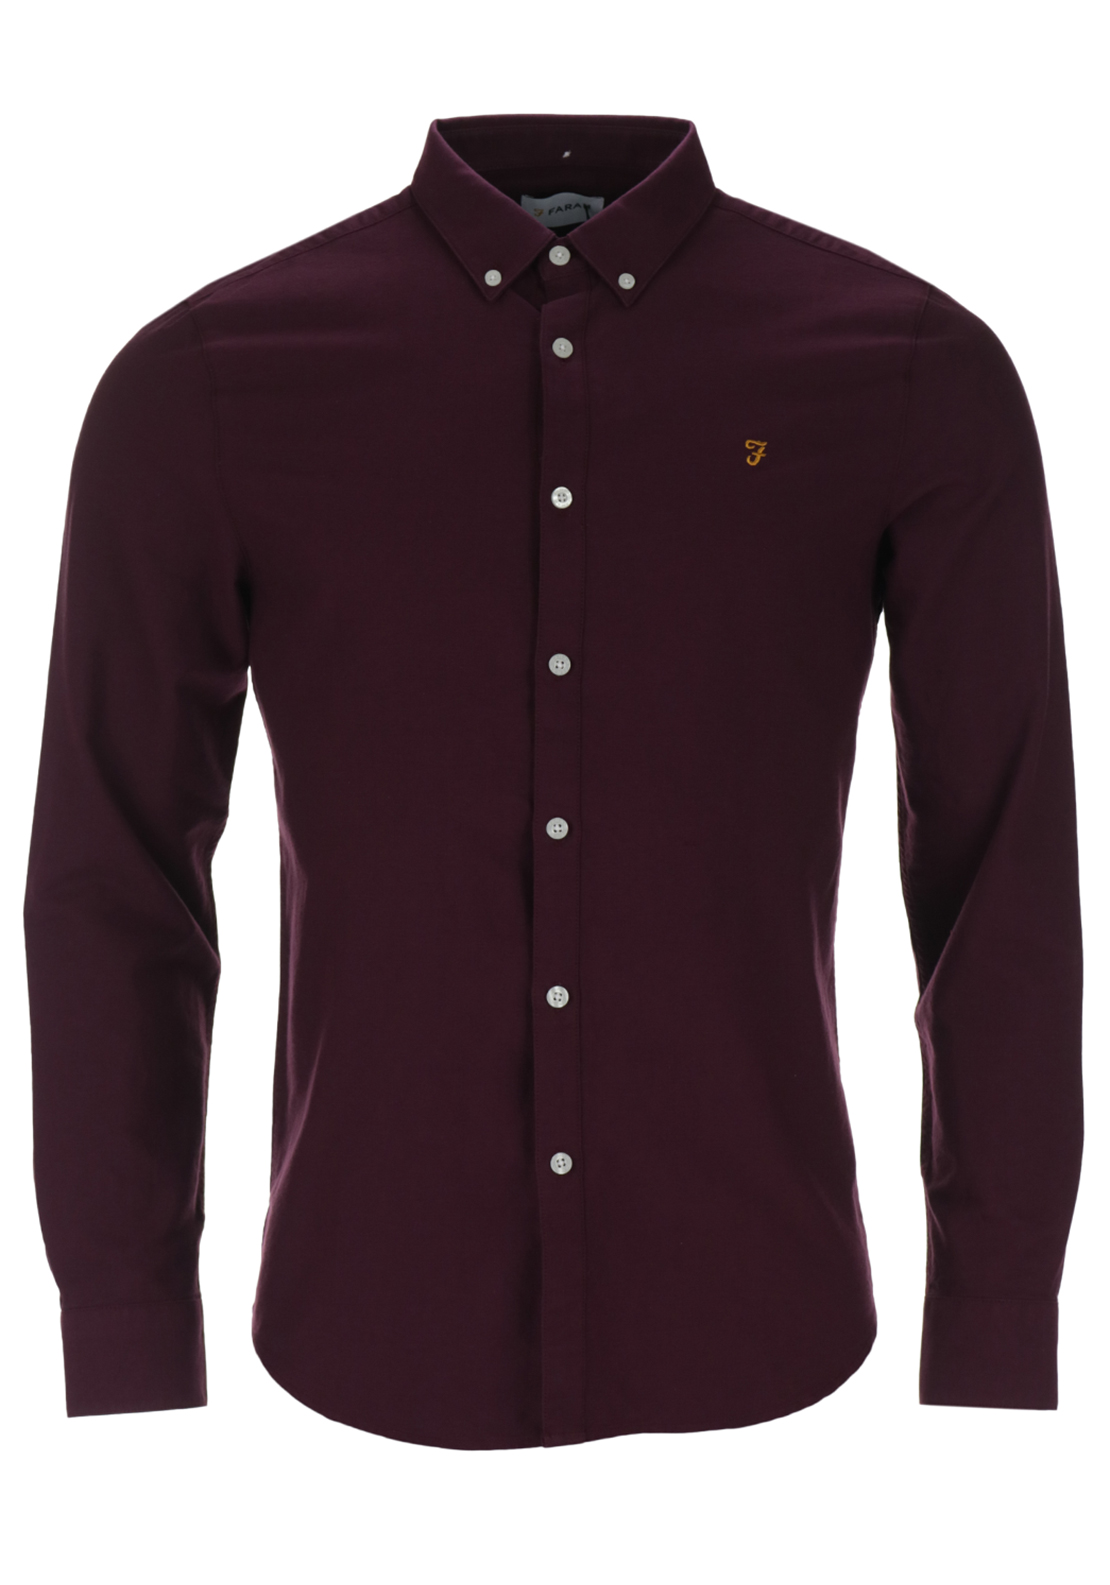 Farah Vintage Mens Brewer Long Sleeved Oxford Shirt, Bordeaux